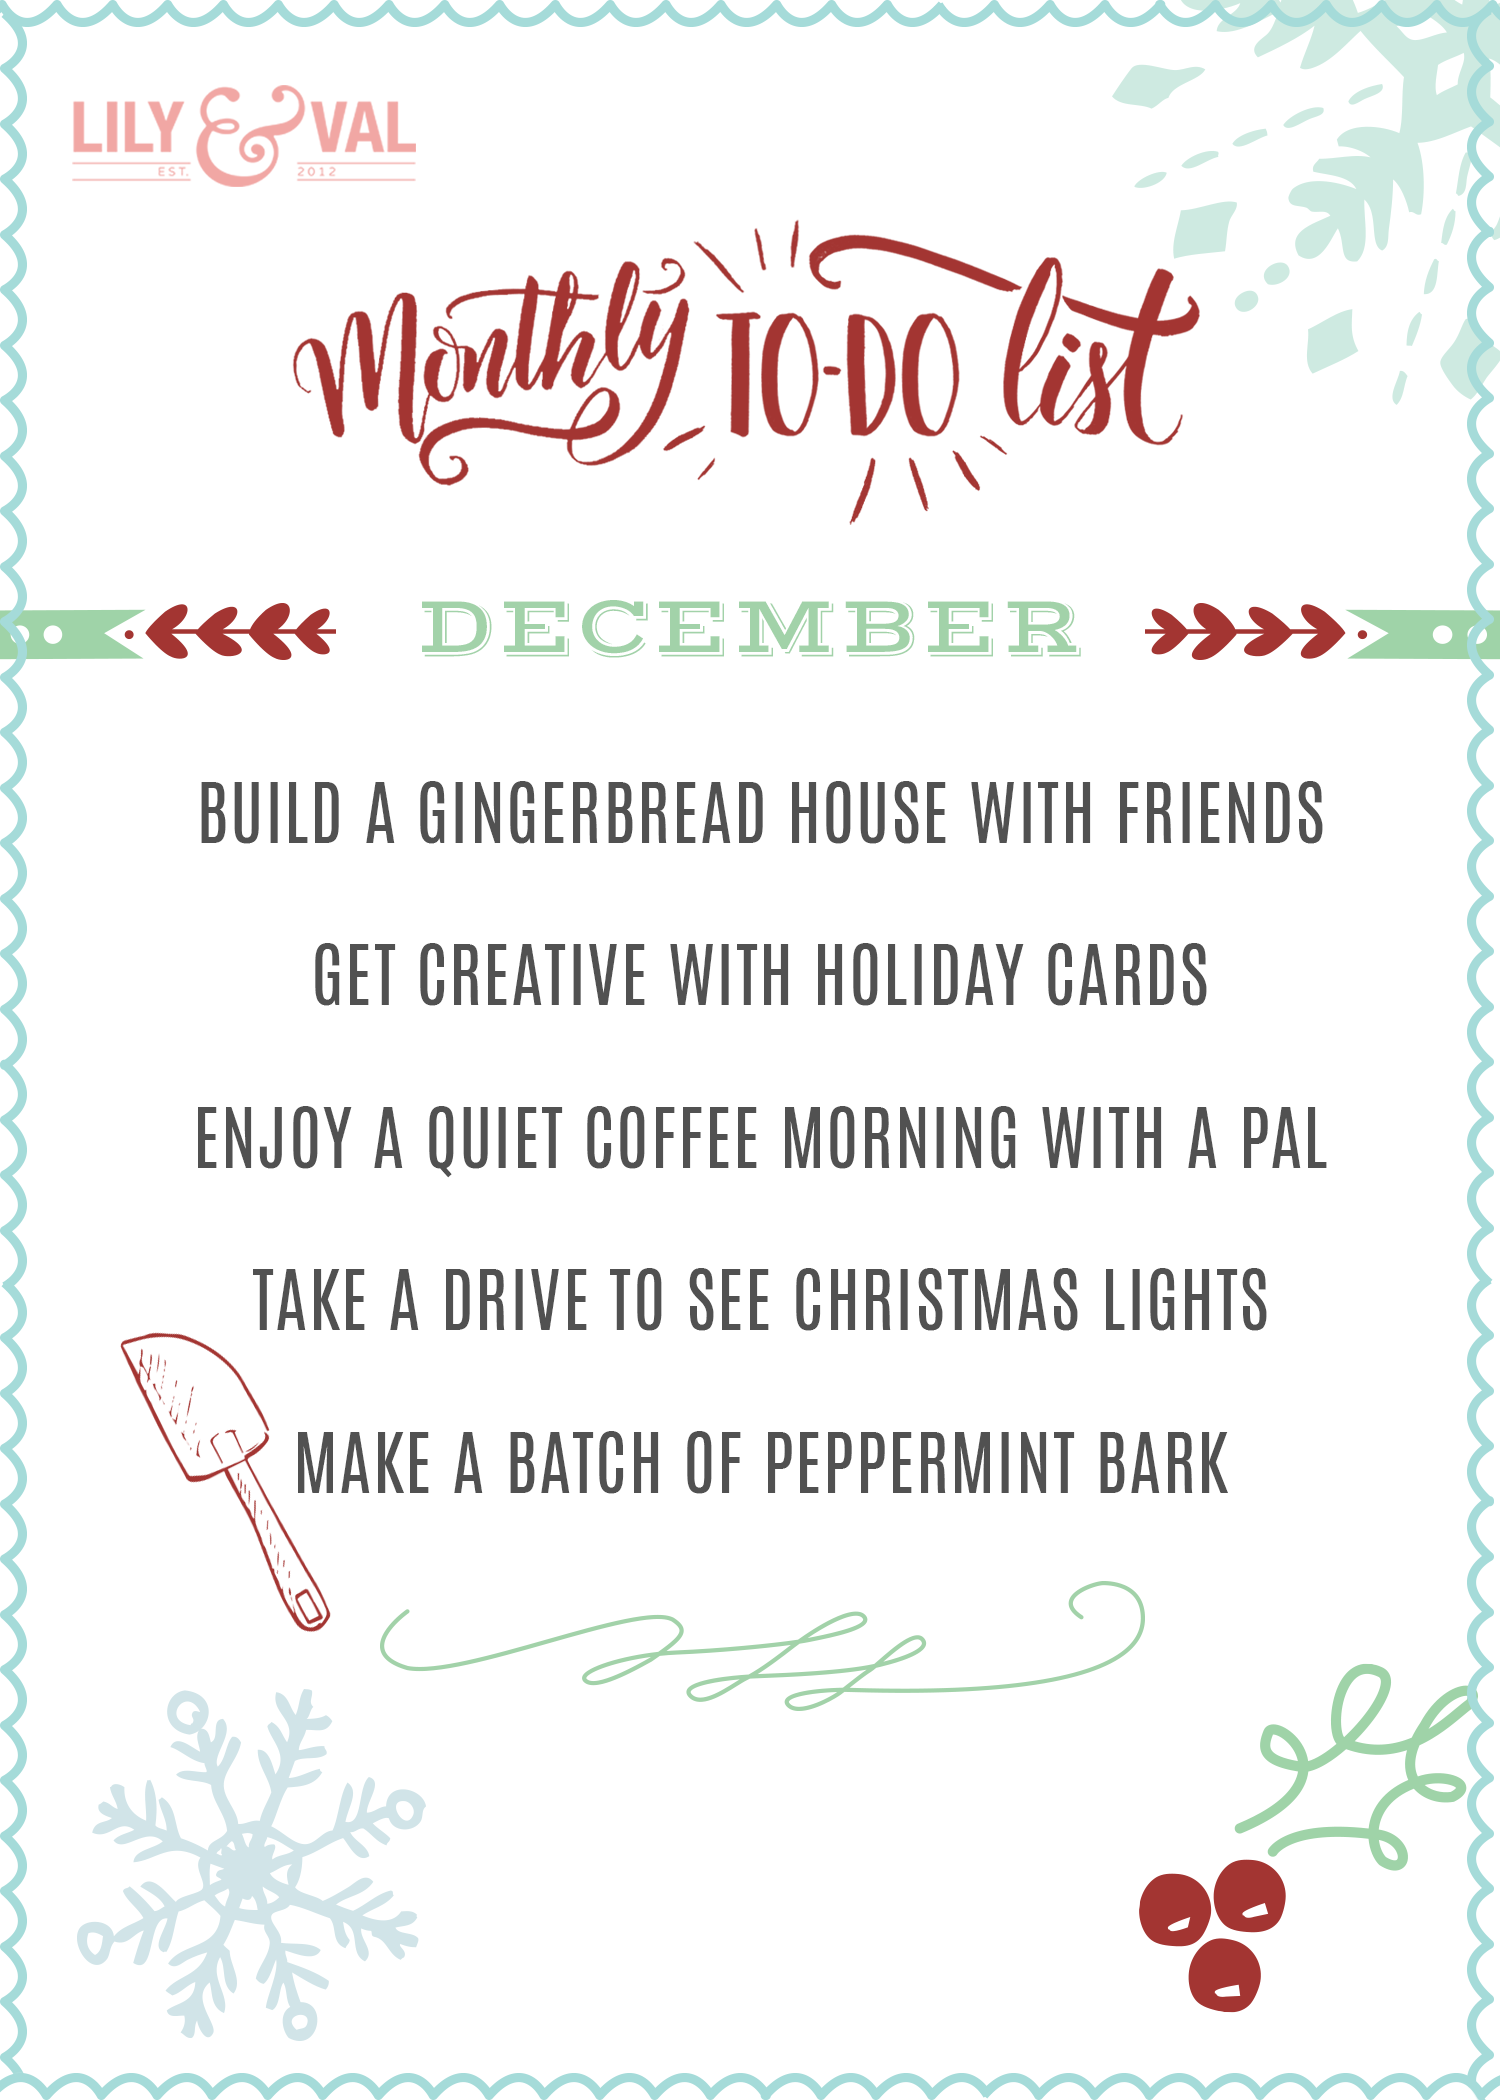 December To-Do List - Fun ideas on Lily & Val Living for savoring the simple things in December